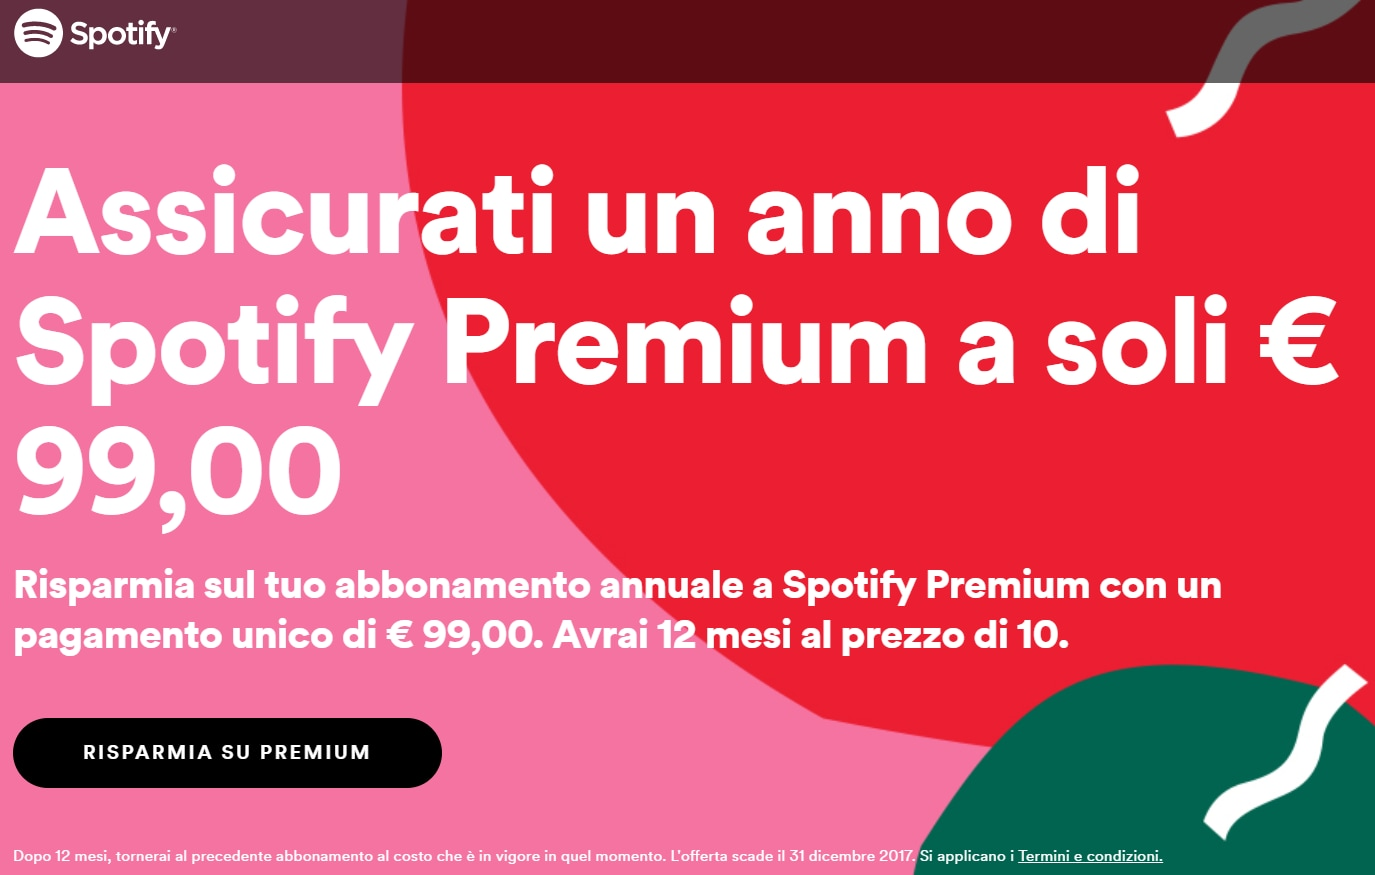 Save 4% with discount gift cards. zooland-fm.ml has 21 gift cards for Spotify which have face values between $ and $ These are discounted by up to 4% which .